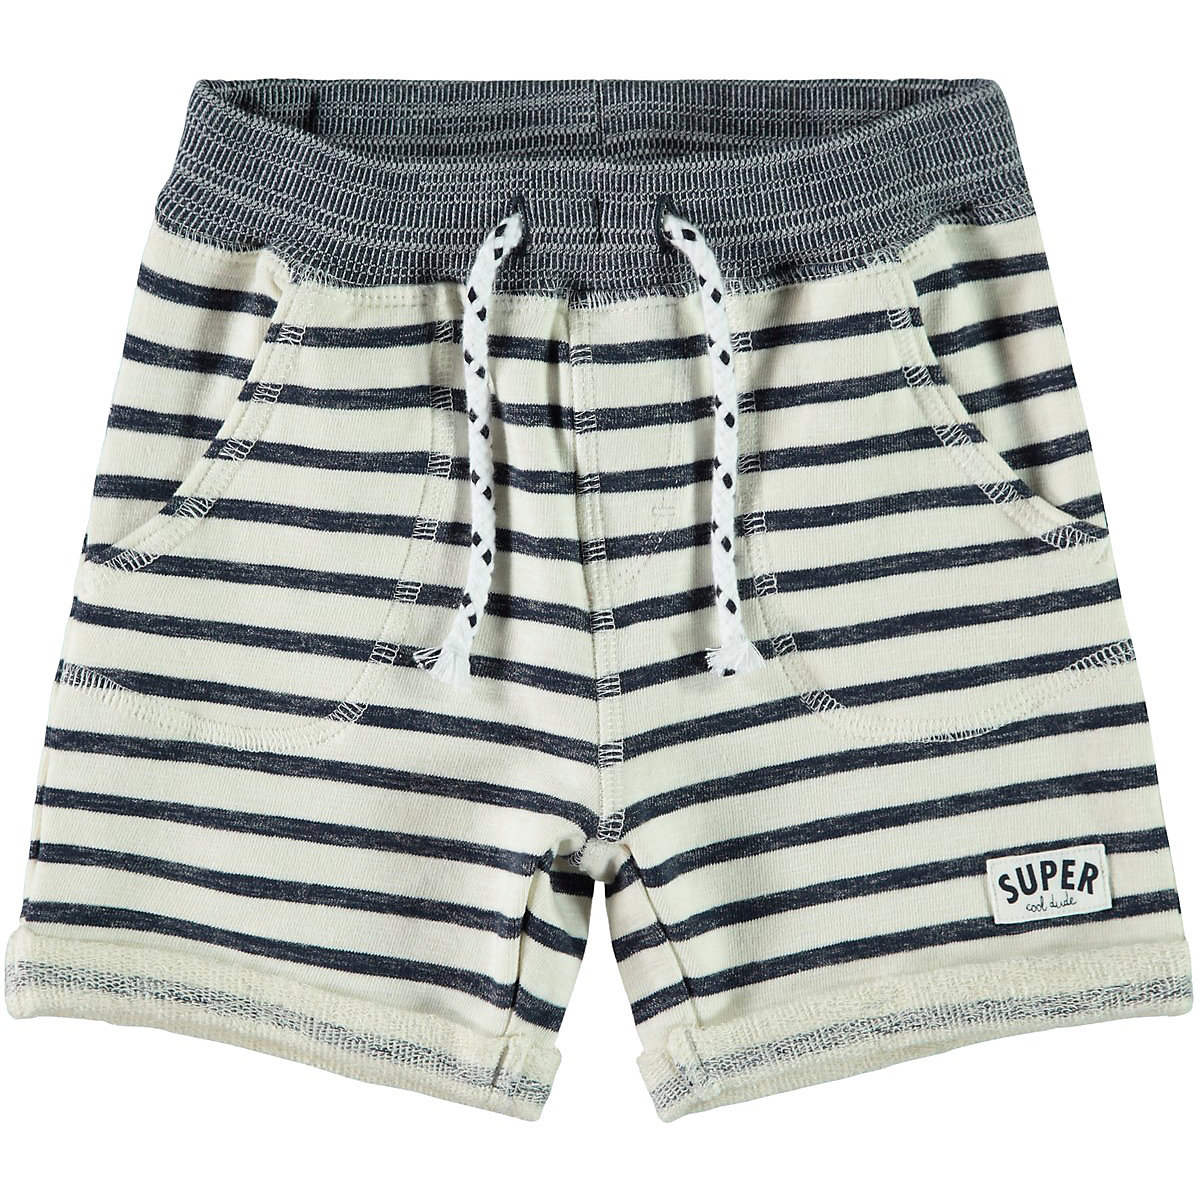 NAME IT Shorts 10266153 for boys and girls child sport for teenagers clothes Cotton Elastic Waist Boys